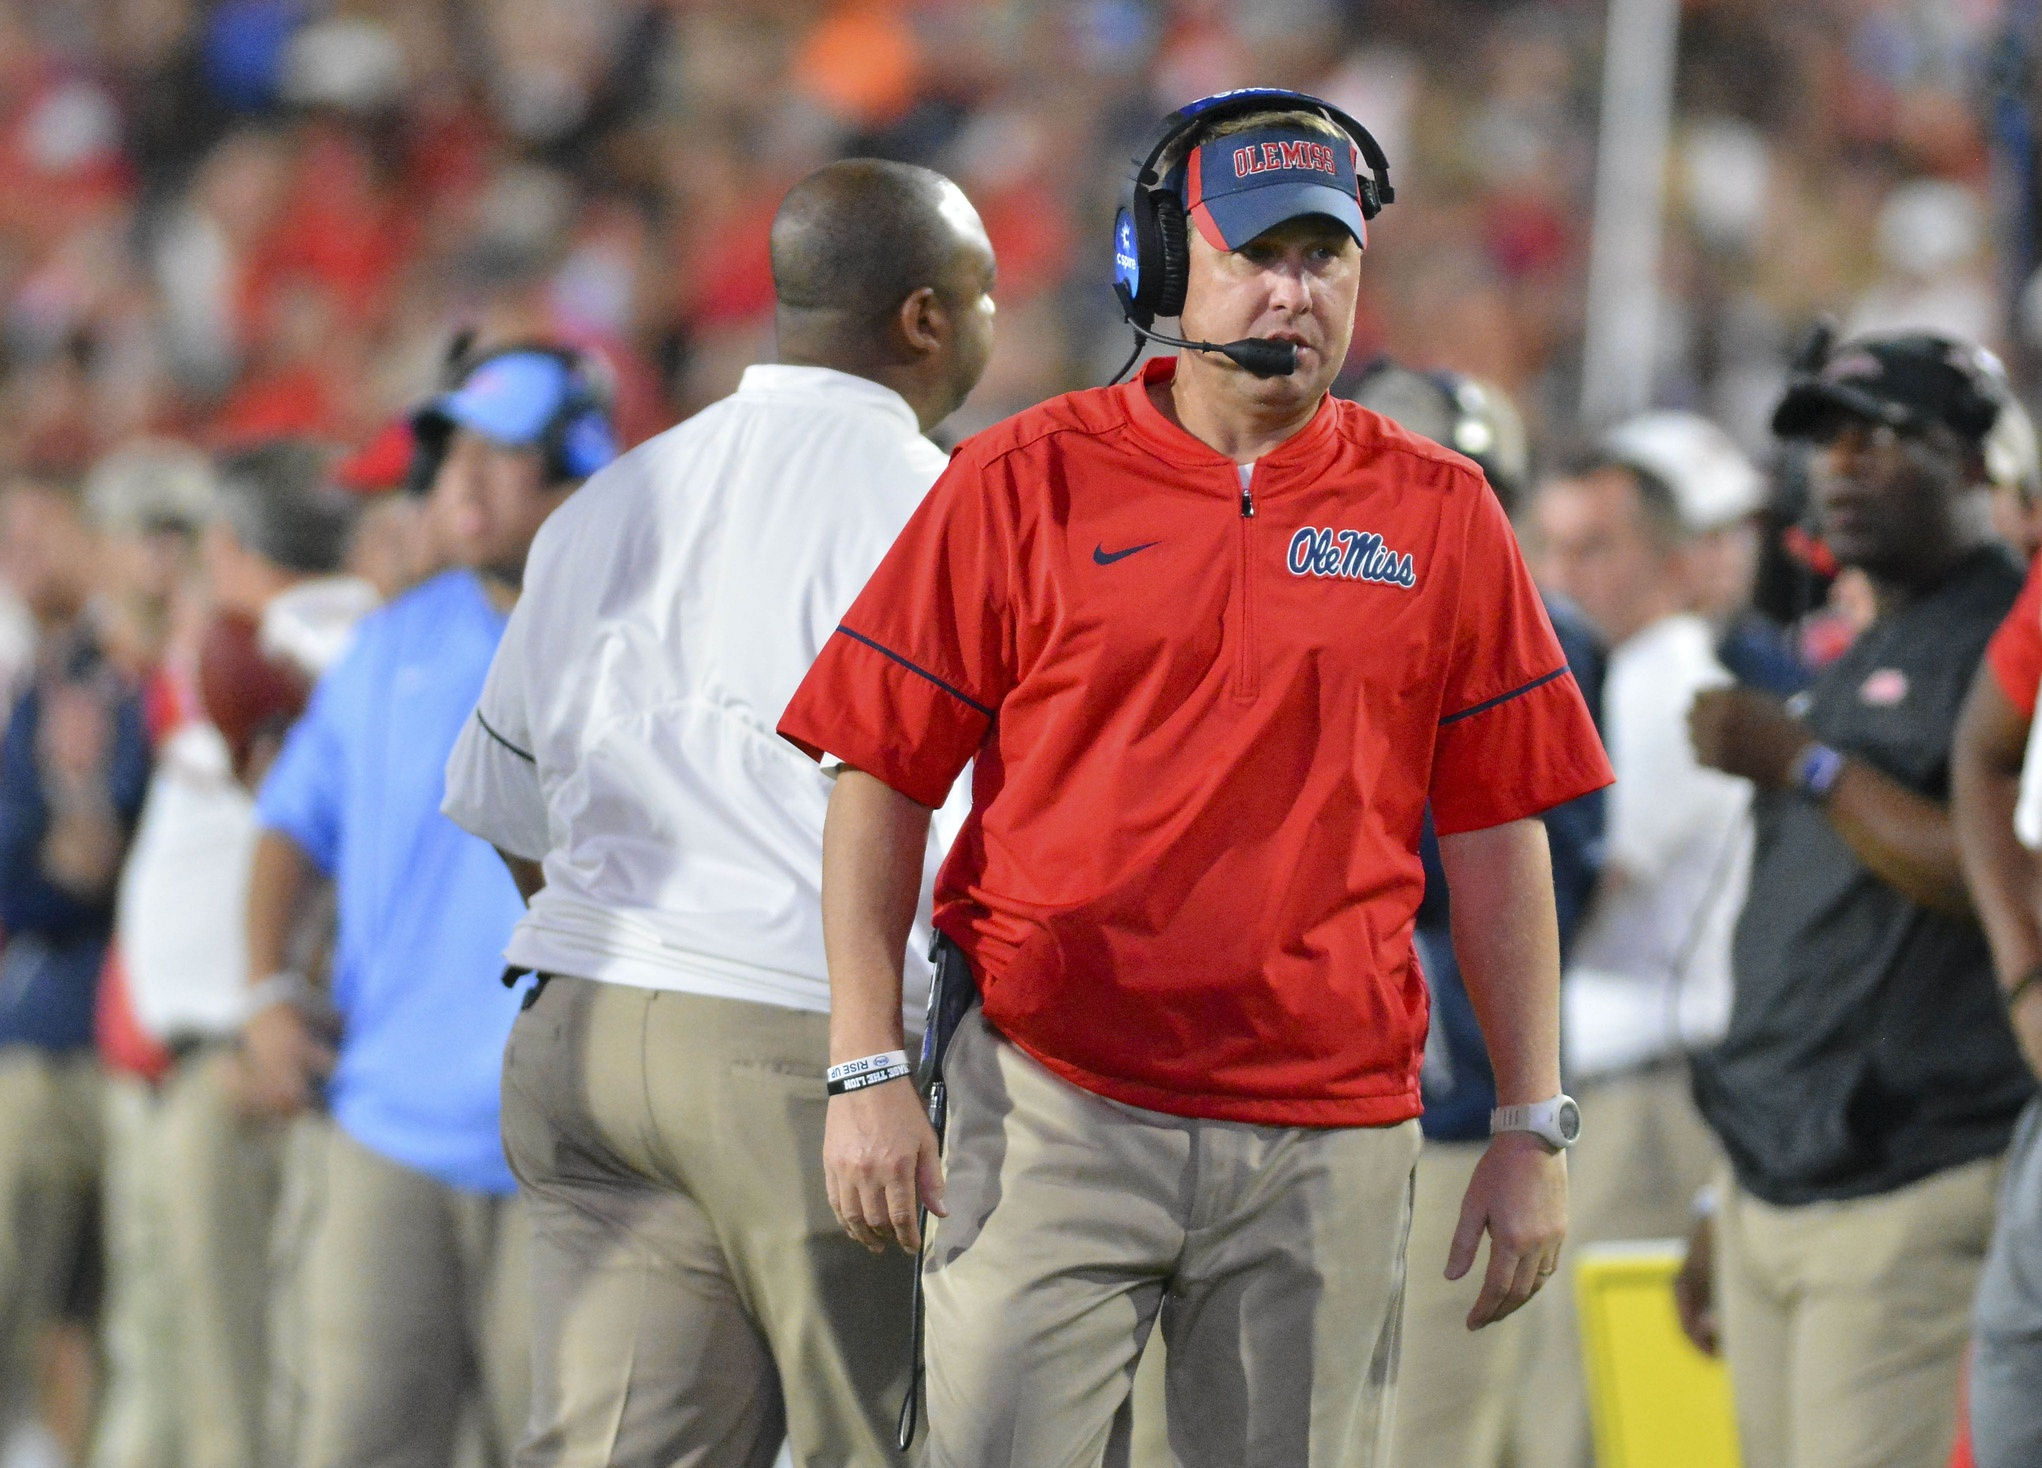 Oct 29, 2016; Oxford, MS, USA; Mississippi Rebels head coach Hugh Freeze talks into his headset during the second quarter of the game against the Auburn Tigers at Vaught-Hemingway Stadium. Mandatory Credit: Matt Bush-USA TODAY Sports